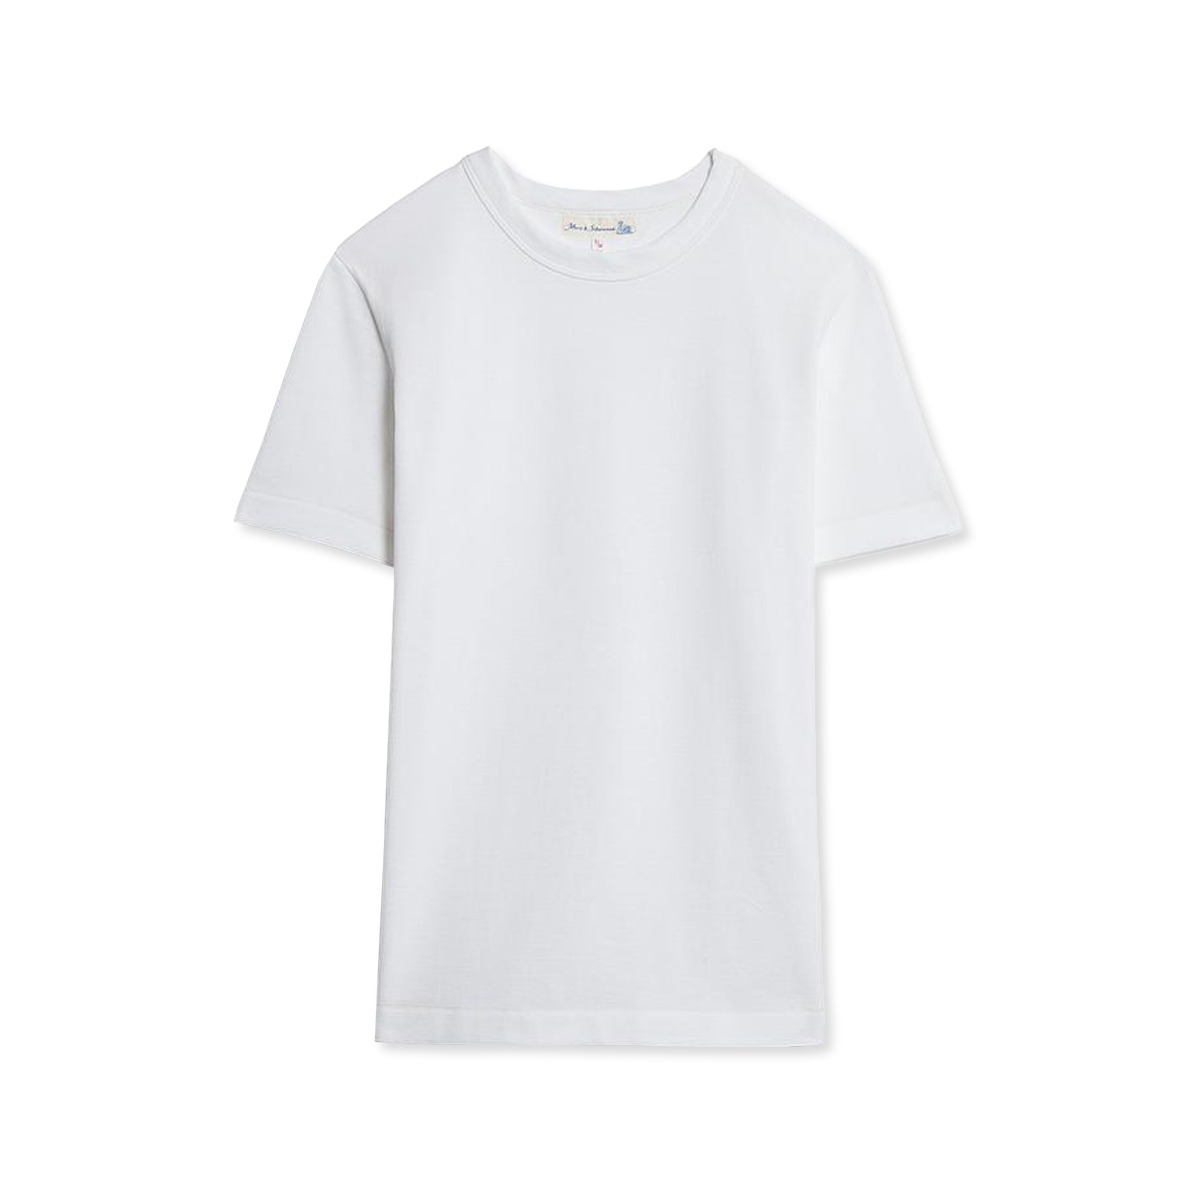 [Merz B. Schwanen] GOOD ORIGINALS MEN'S CREW NECK T-SHIRT 'WHITE'